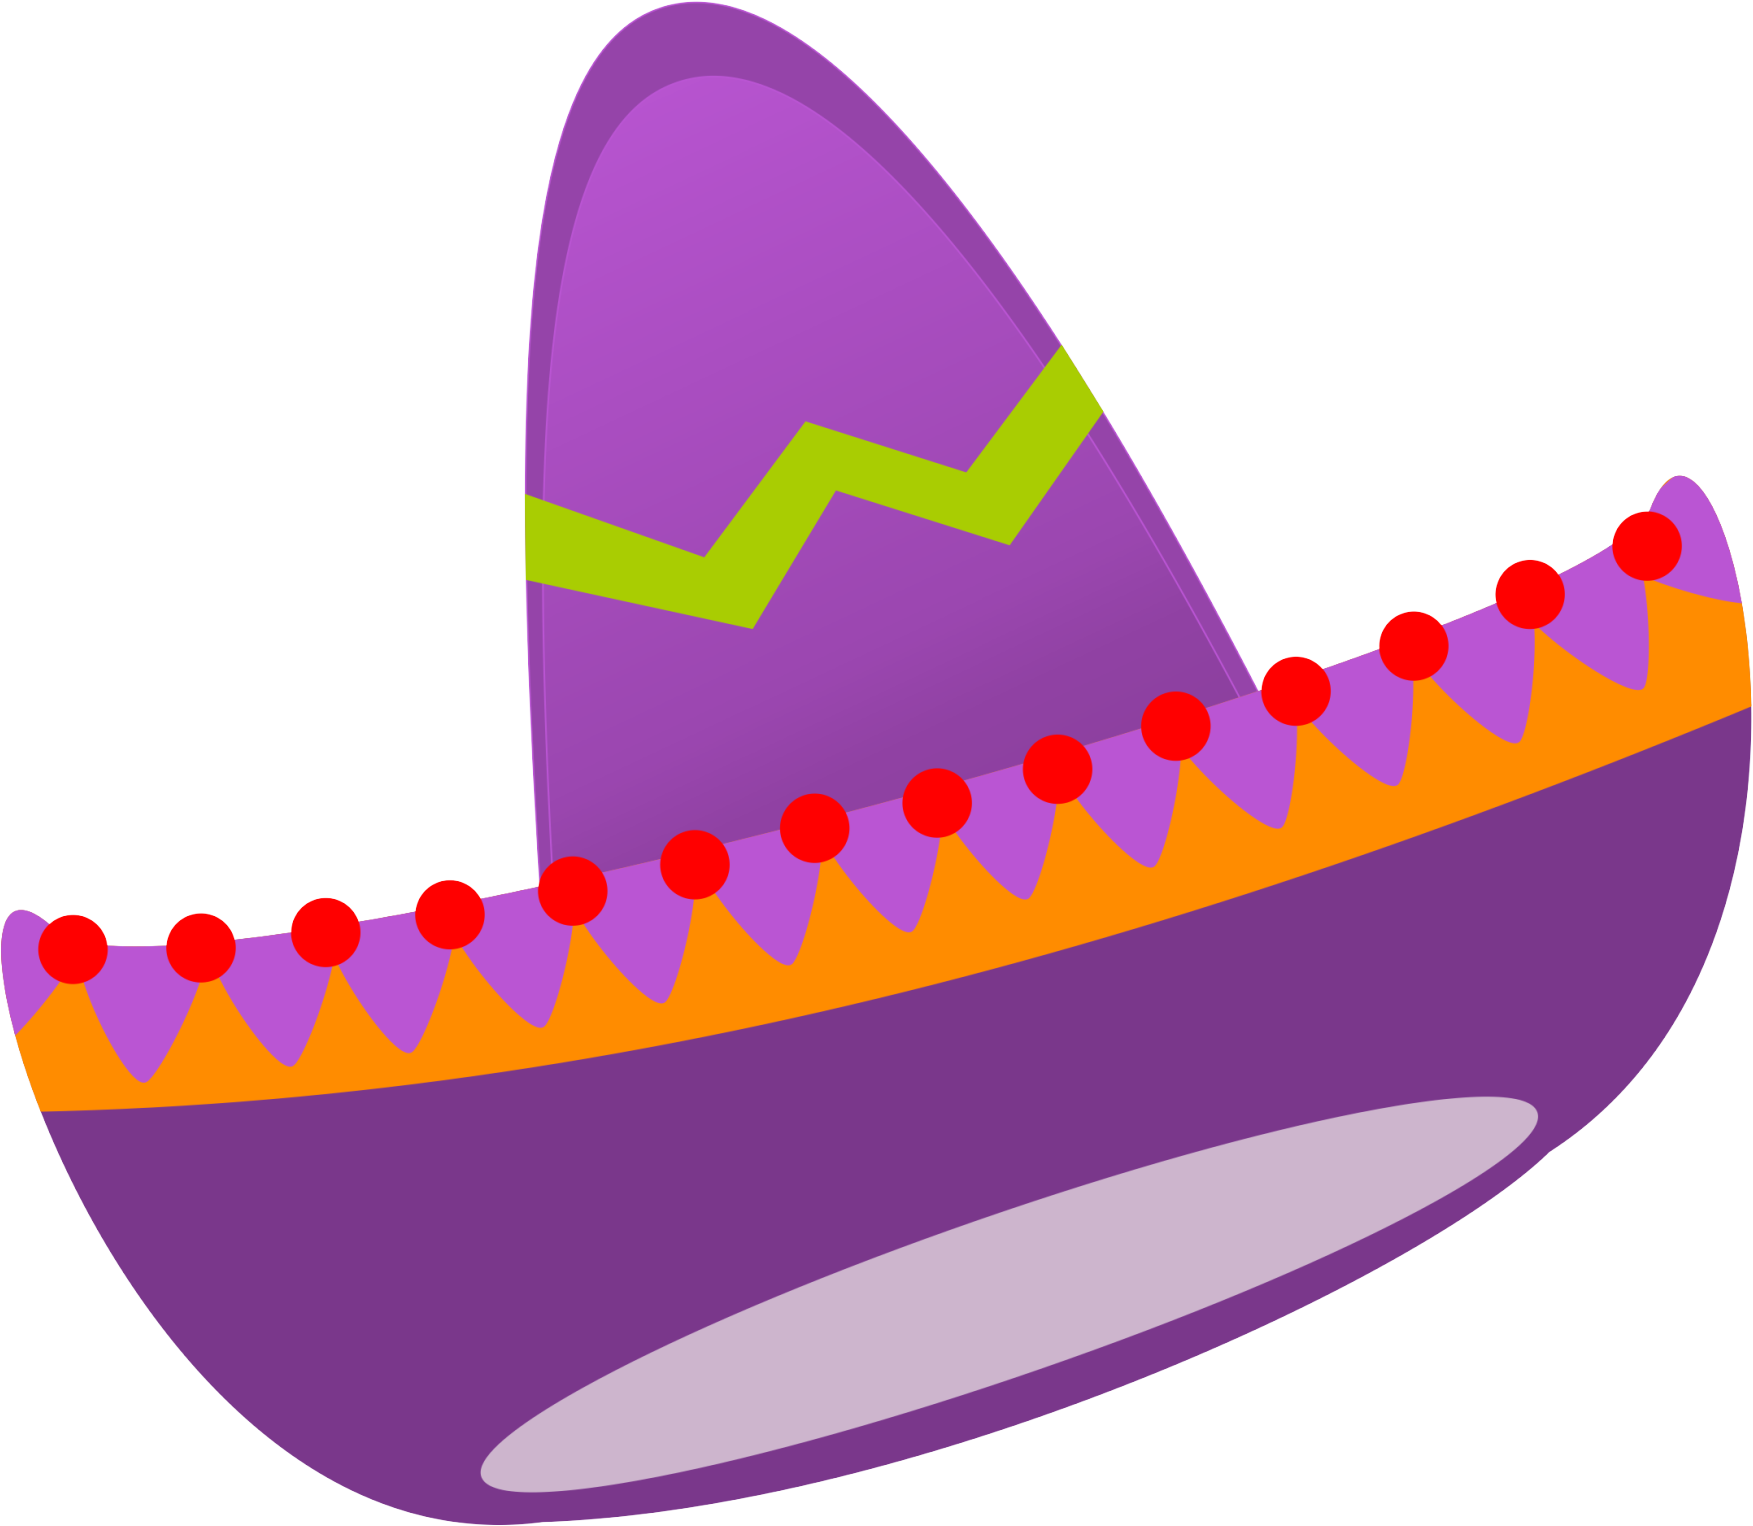 Fiesta mexicana png. Pin by cecy godoy